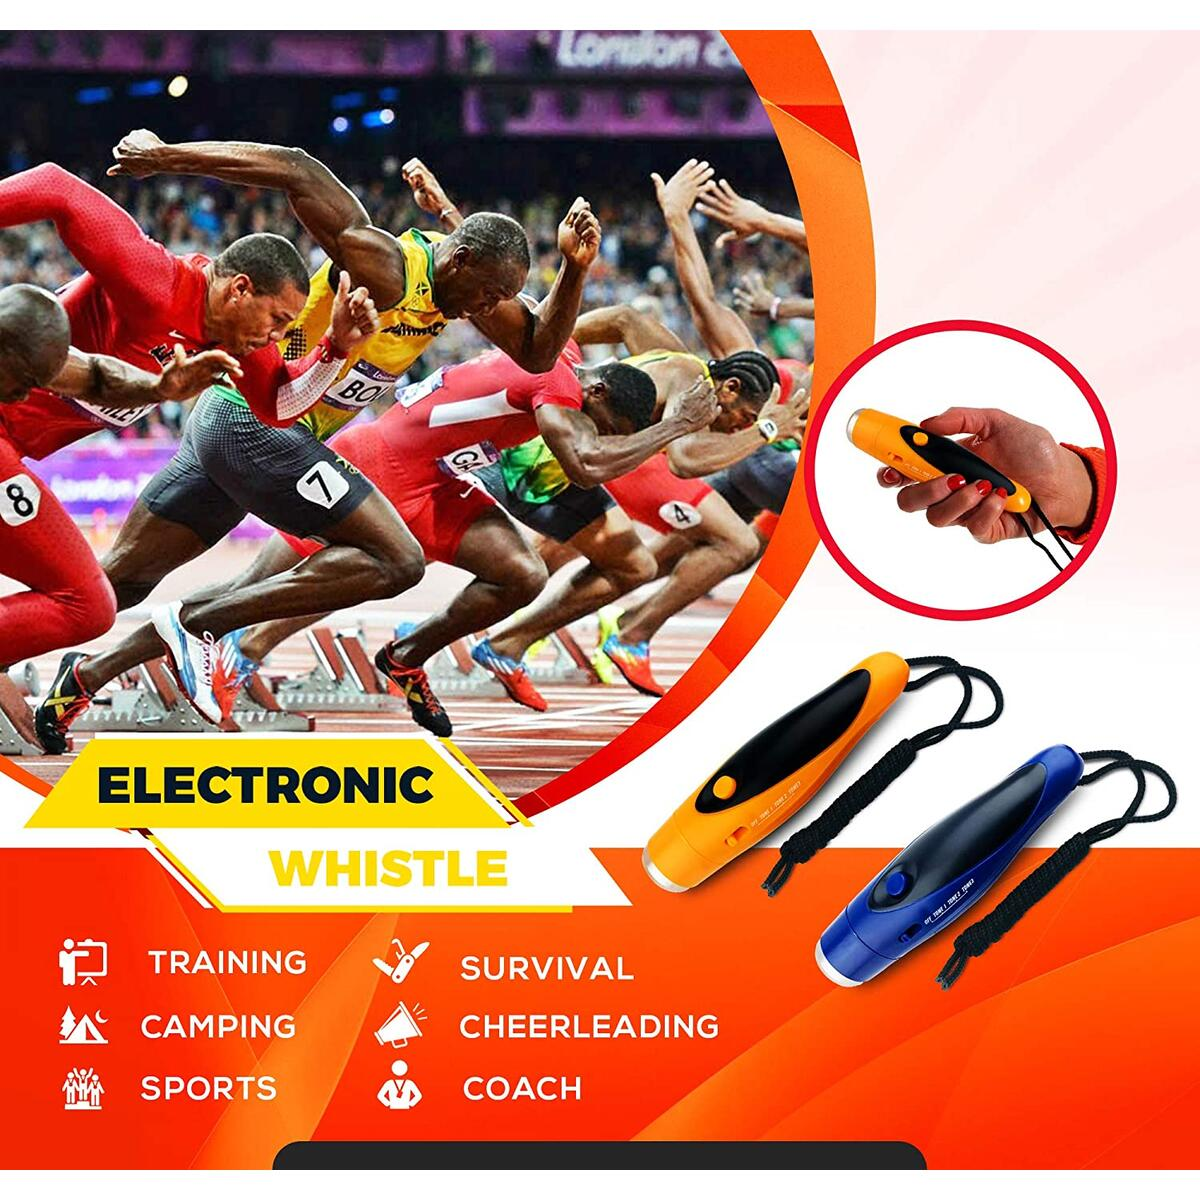 Blooco Three Tone Electronic Whistles for Referees, Teachers, Coach, Lifeguards, Sports - Hand Whistle with Lanyard, Lifeguard Whistle, Referee Whistle, Electric Whistles, Sports Whistle - 3 Volume…